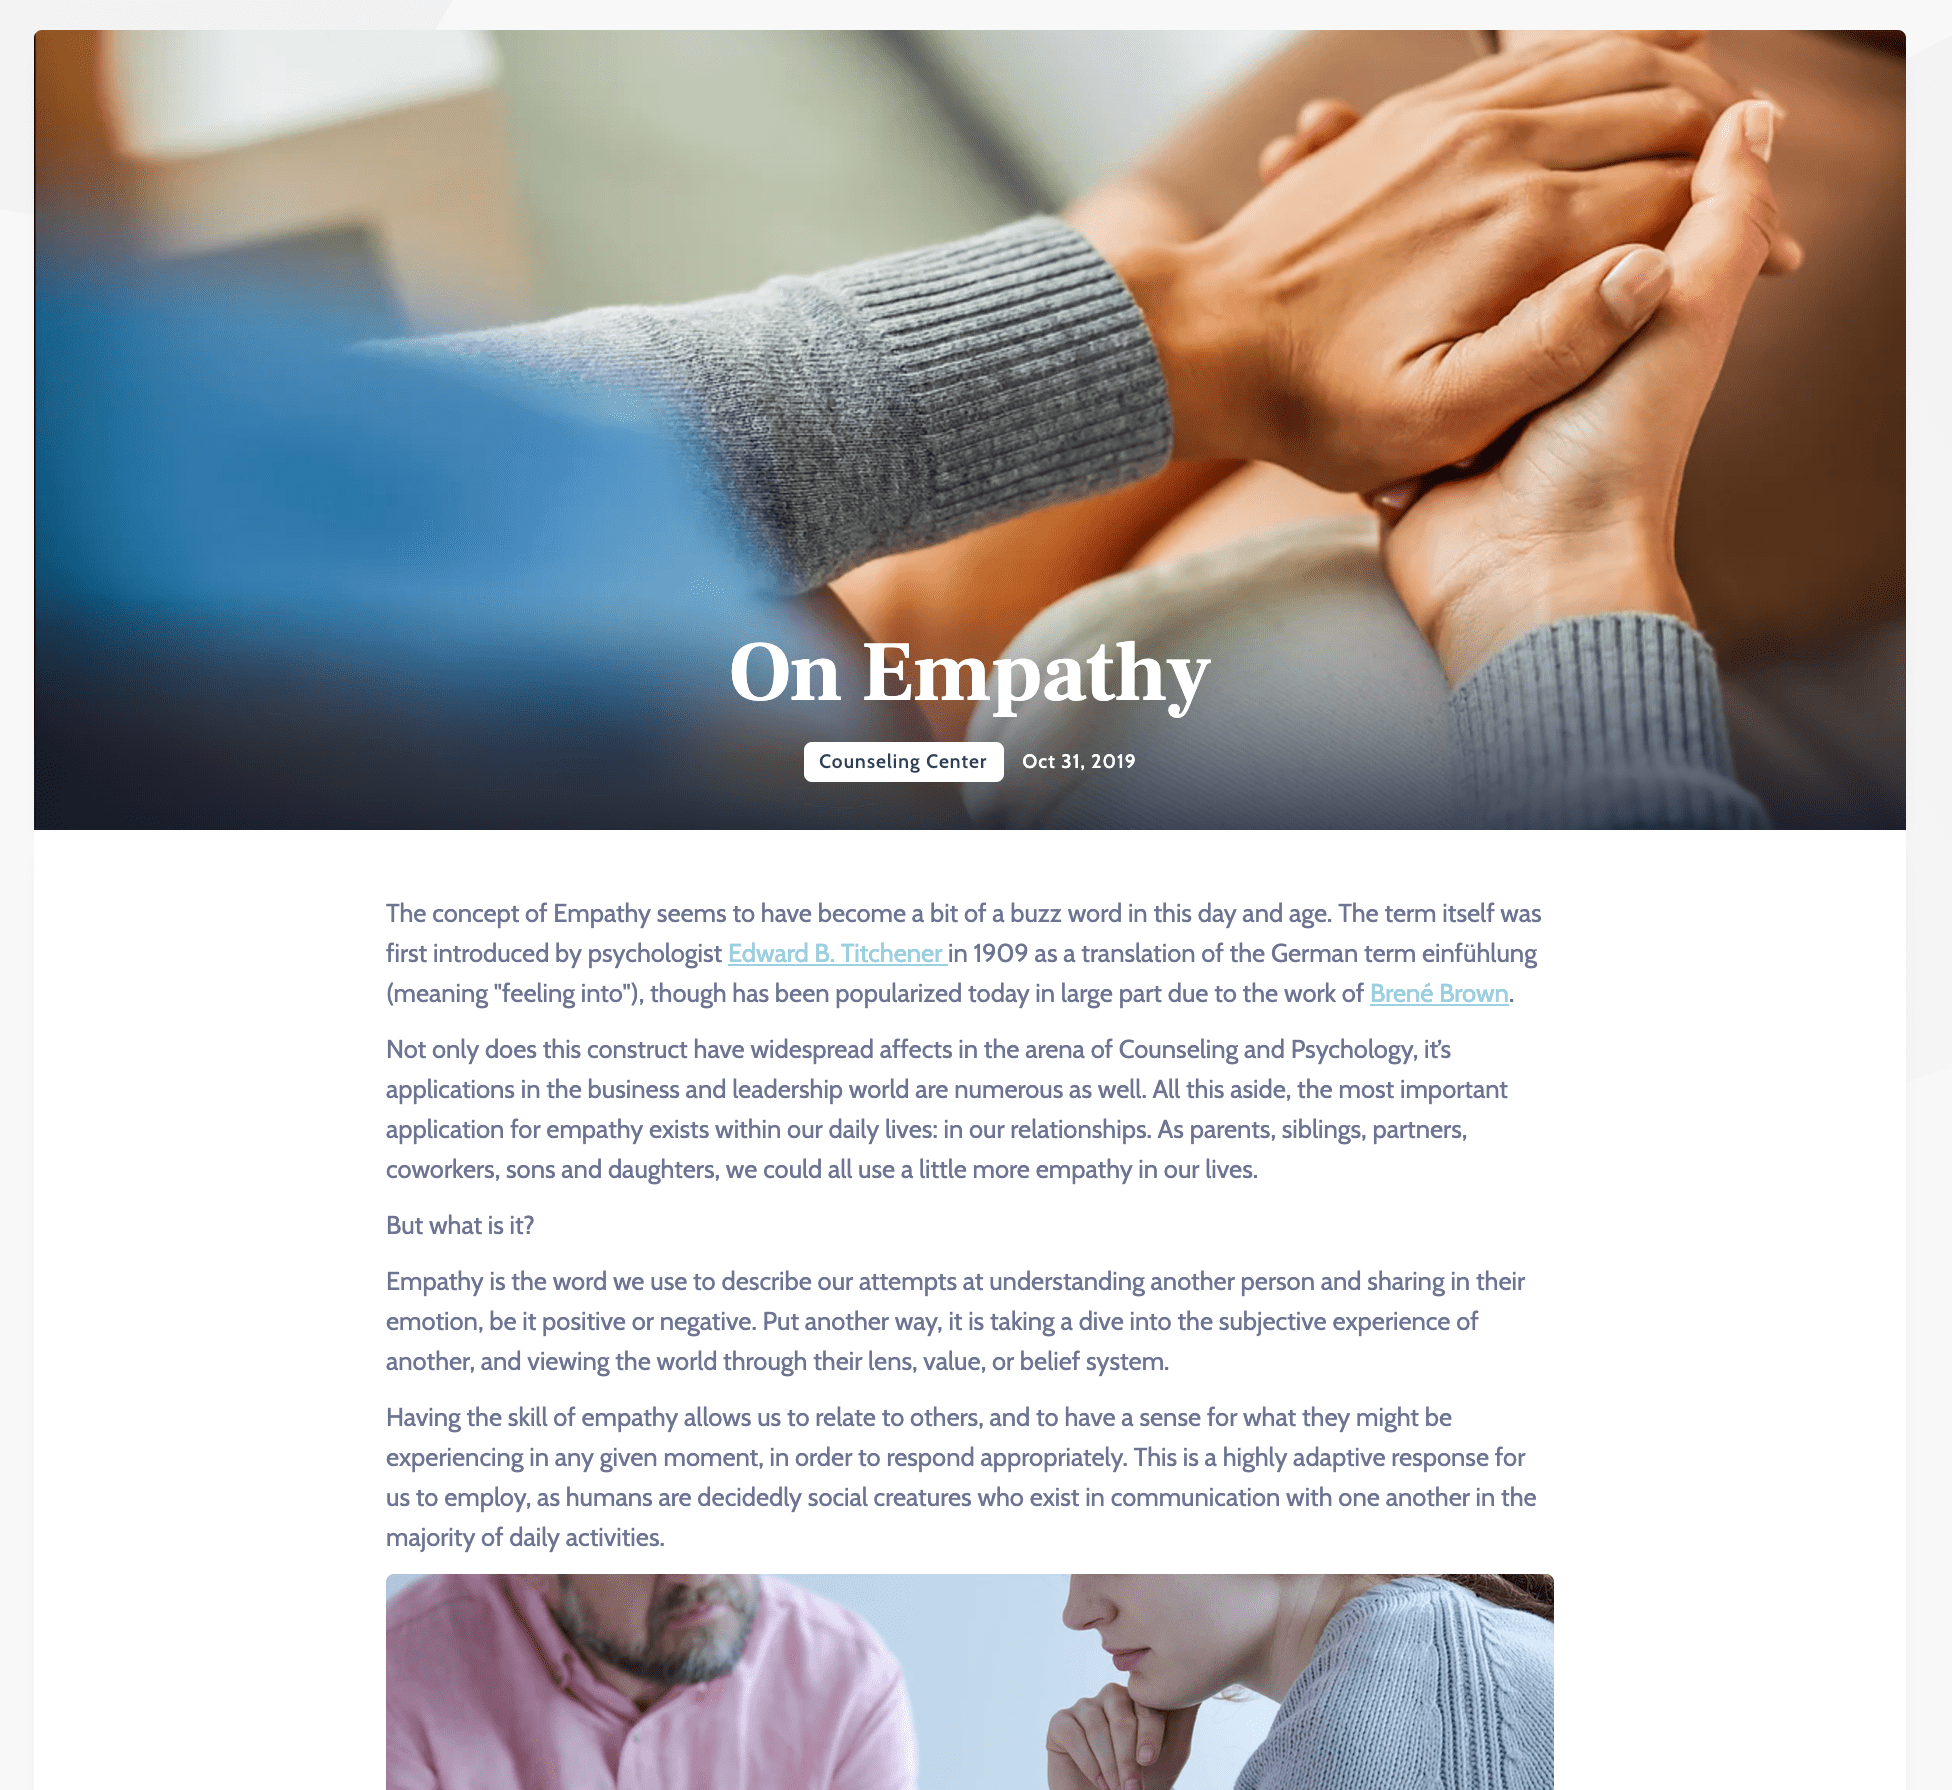 Blog Example for Counselor